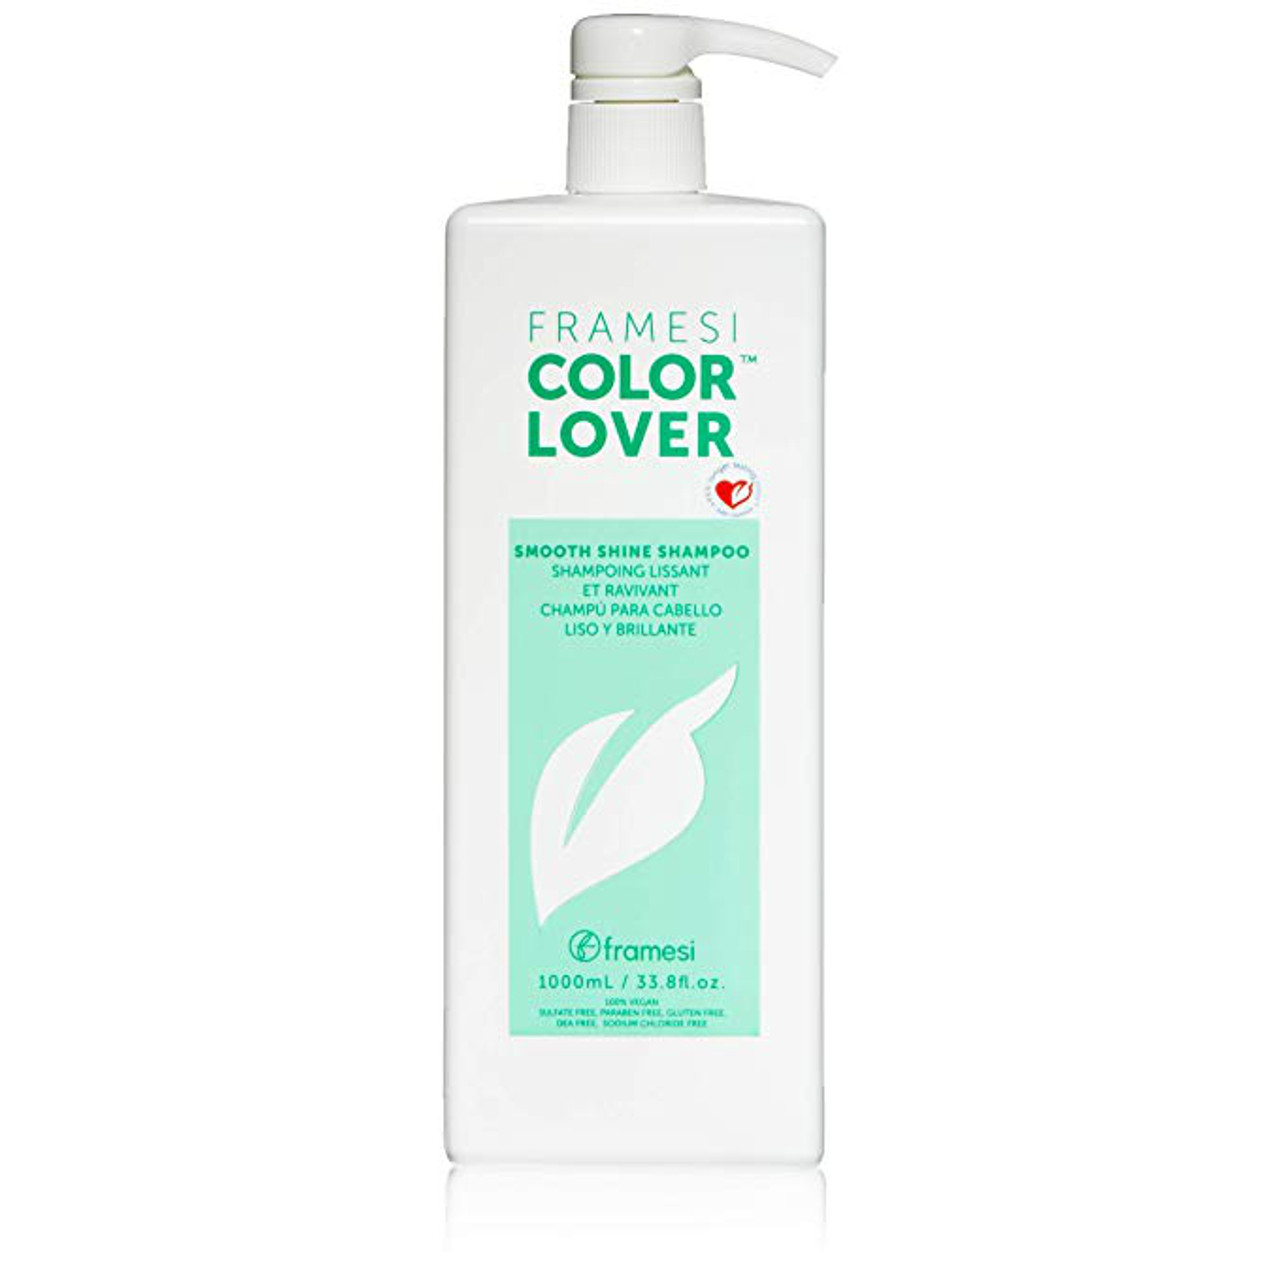 Framesi Color Lover Smooth Shampoo 1L